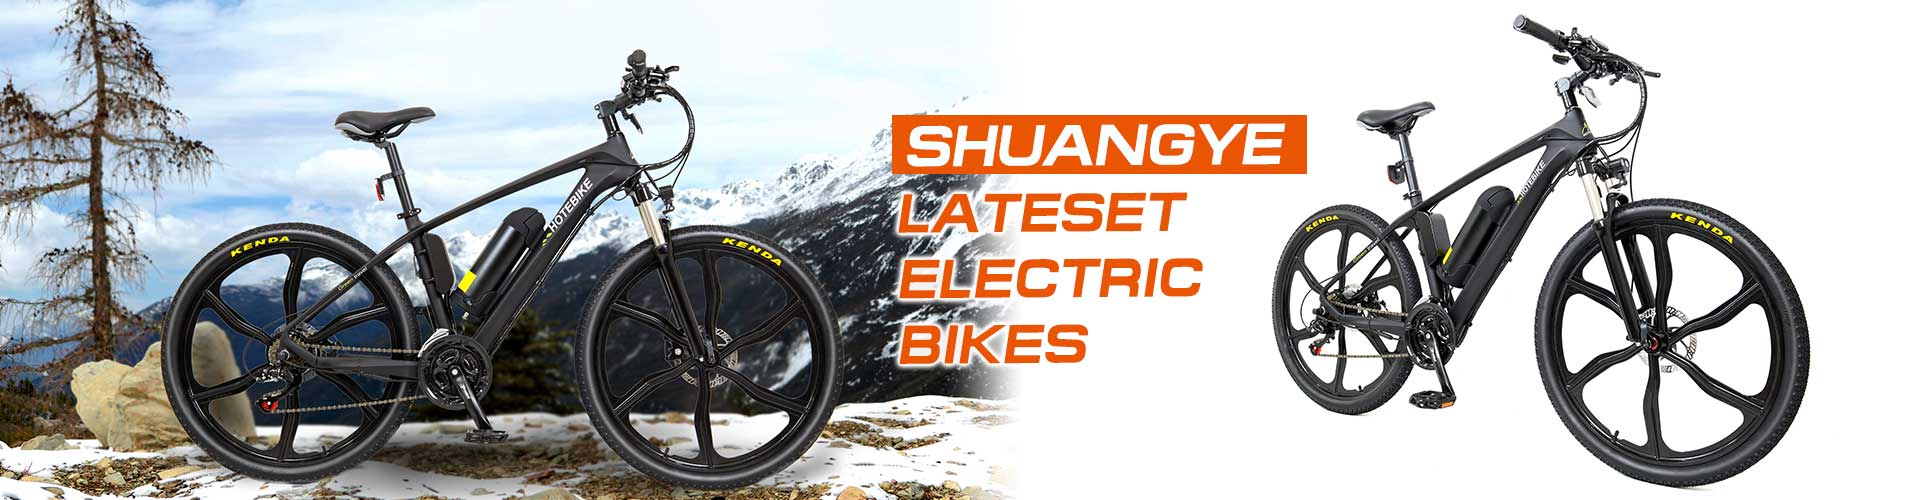 Shuangye latest electric bikes launched